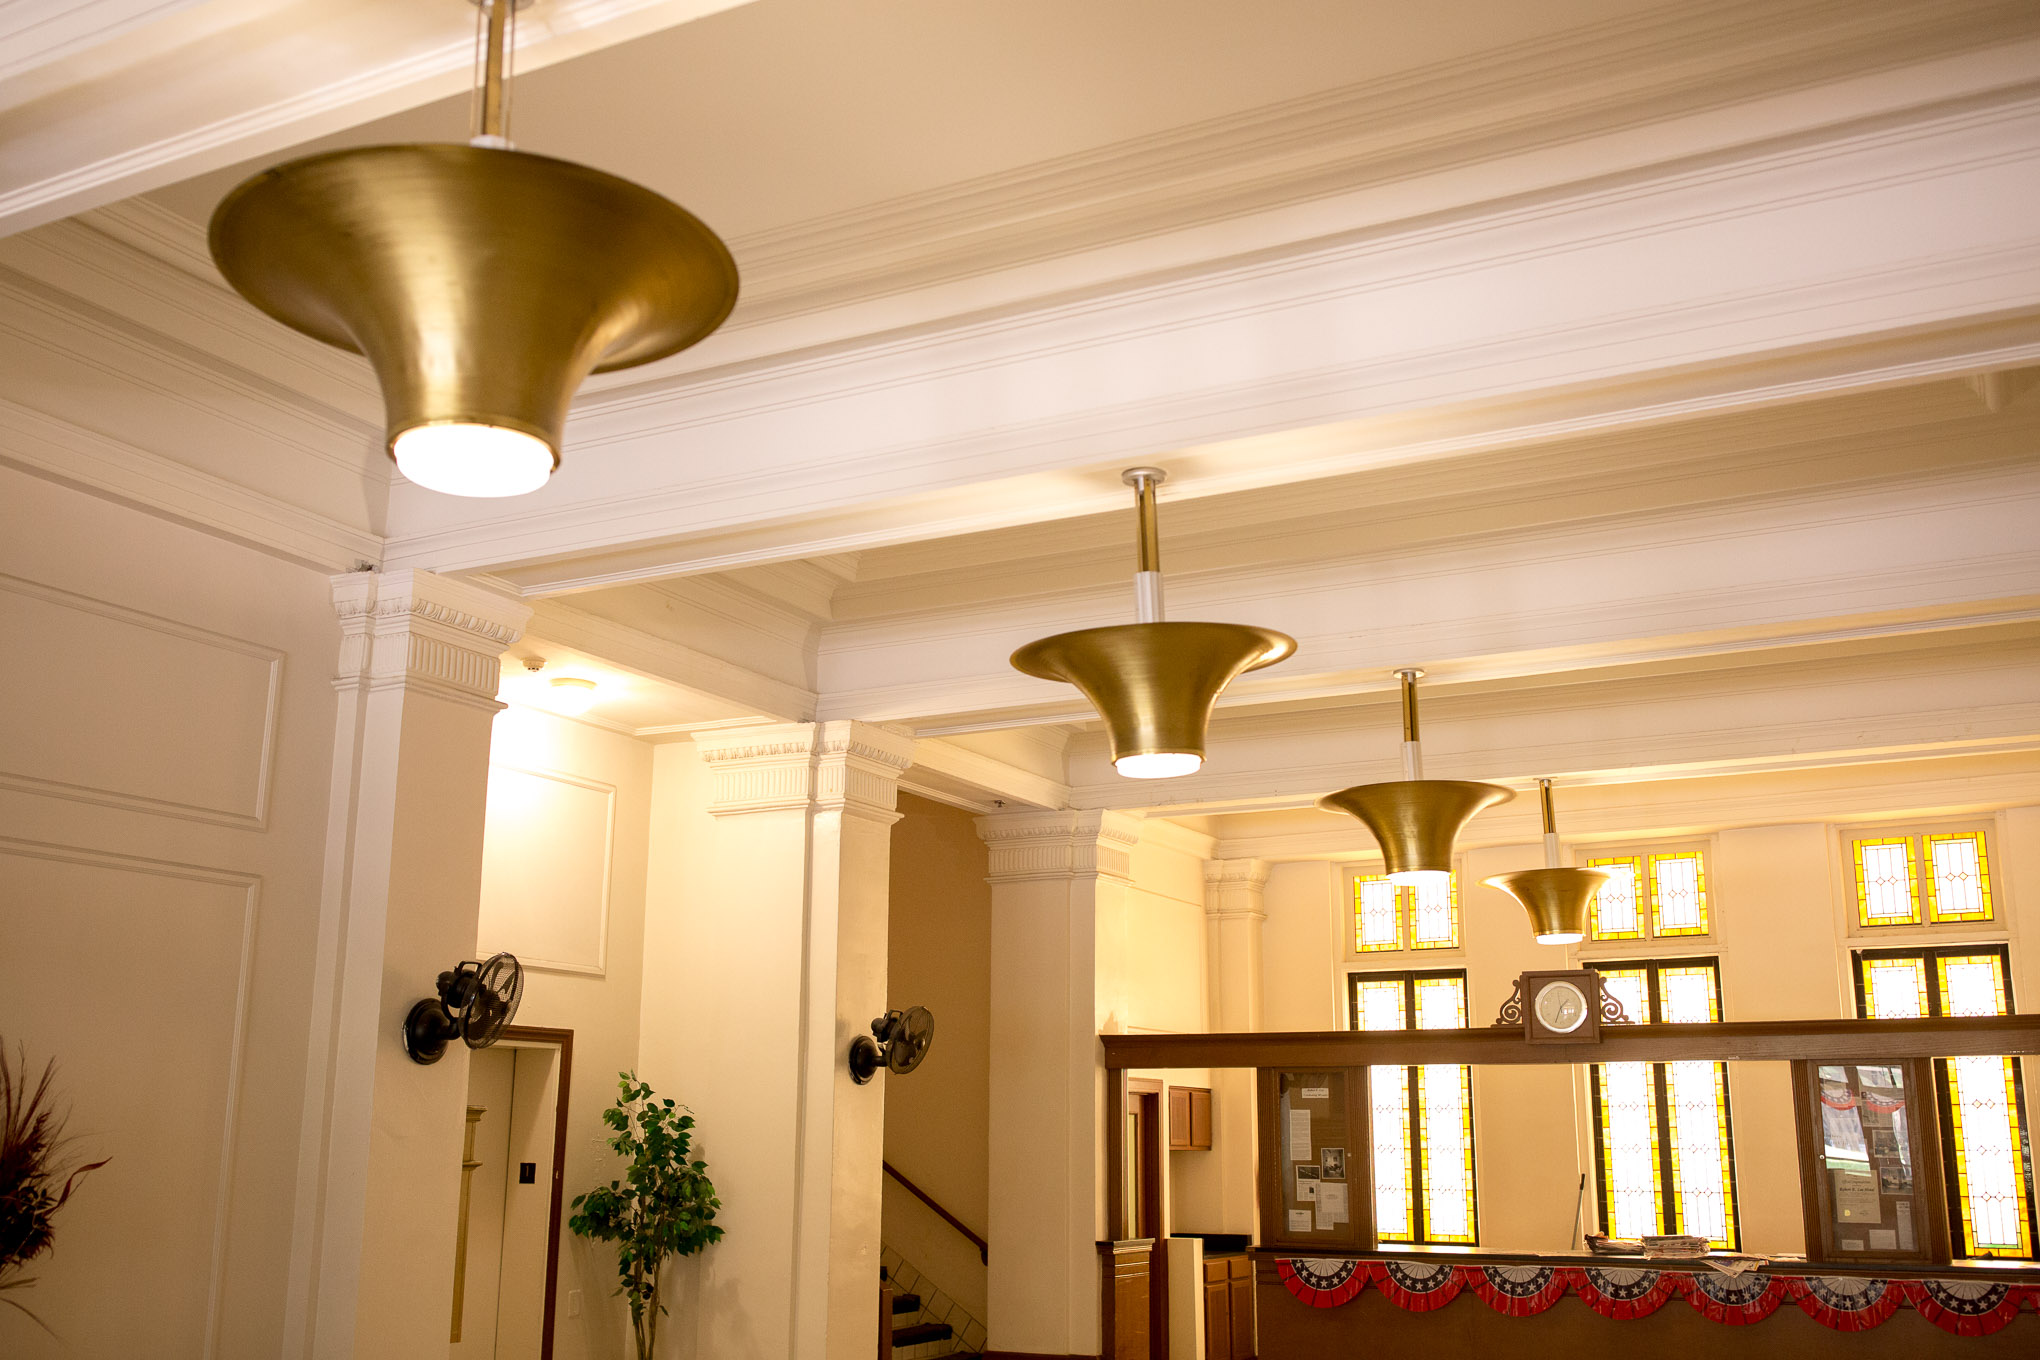 The interior lobby of the Robert E. Lee Apartments. Photo by Scott Ball.